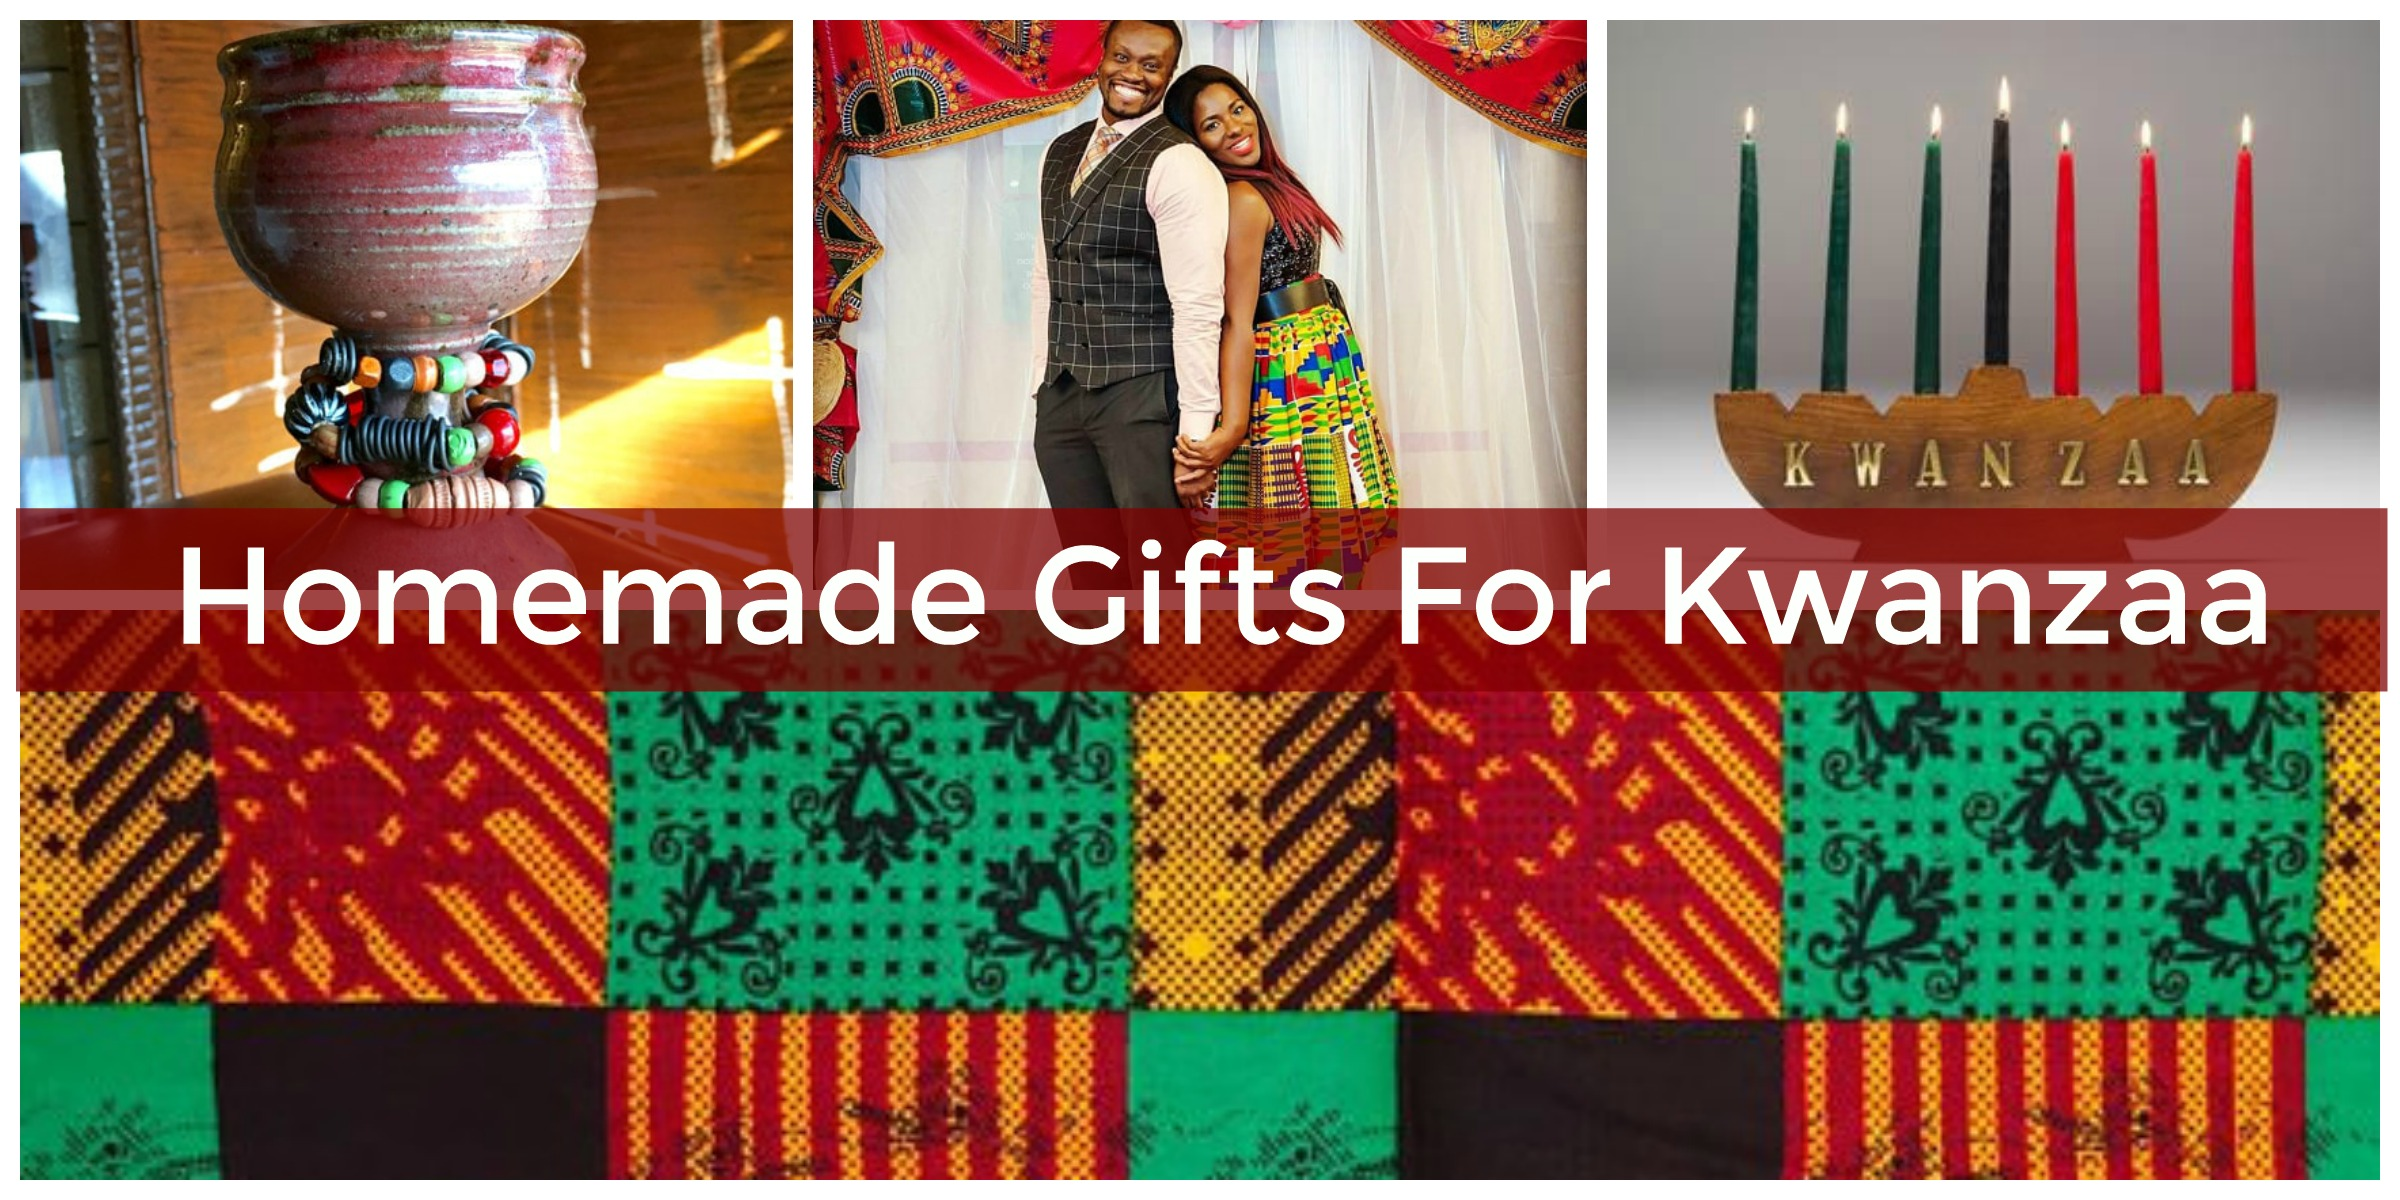 Traditional Kwanzaa Gift Ideas To Make Homemade